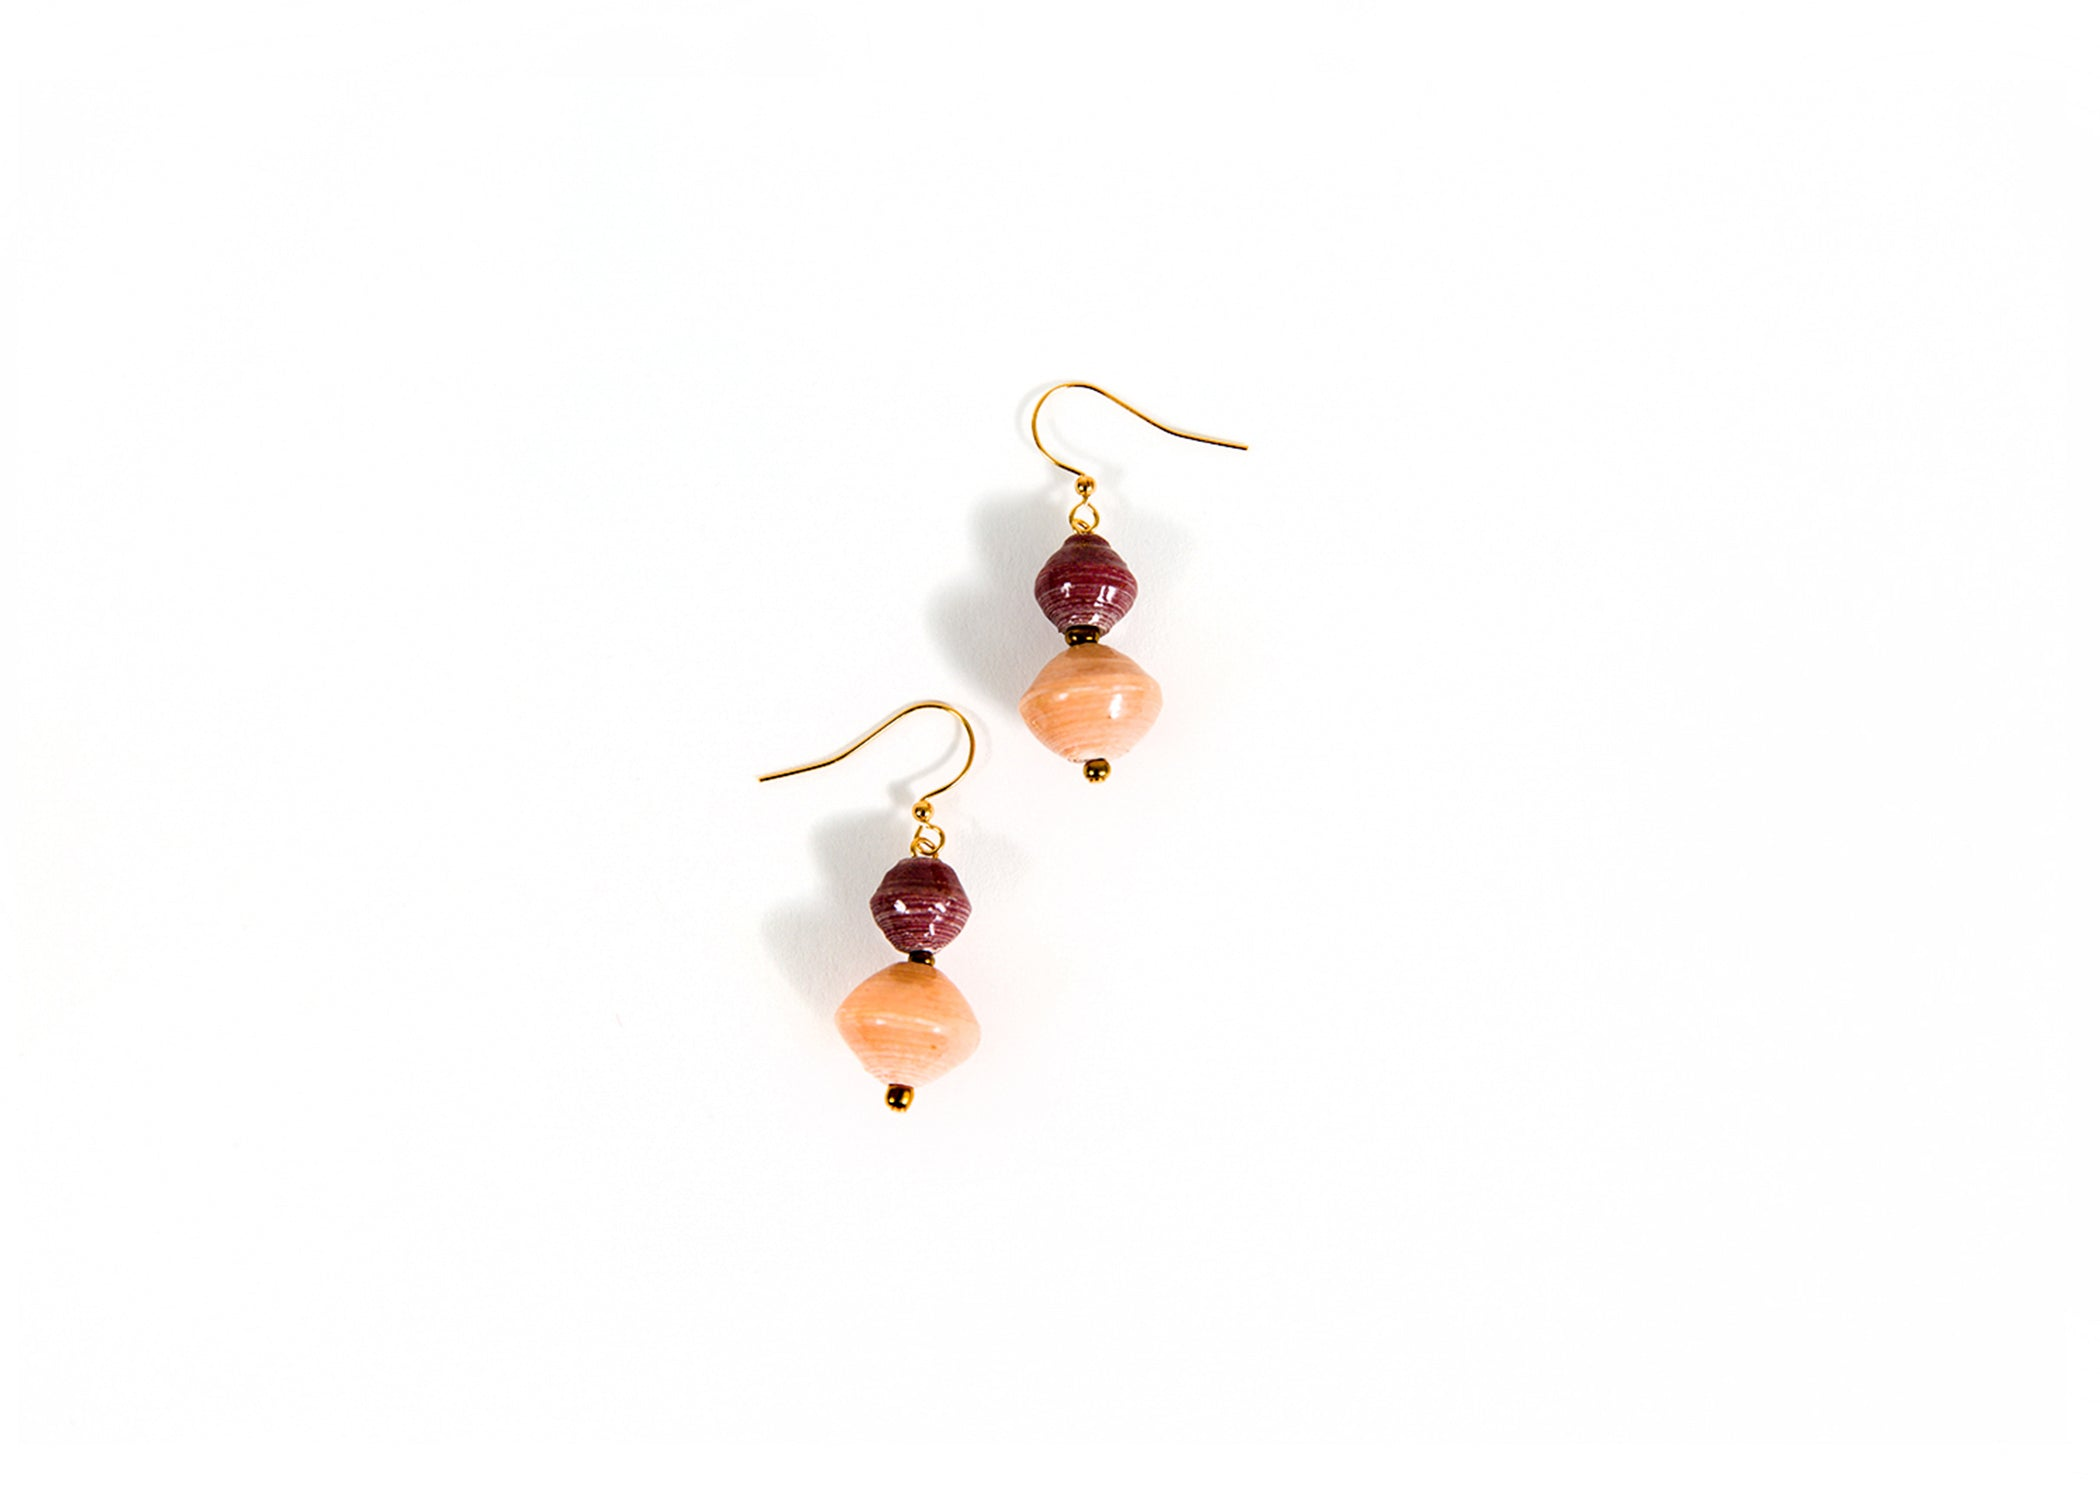 Rose Beaded Earrings - KAZI - Artisan made high quality home decor and wall art